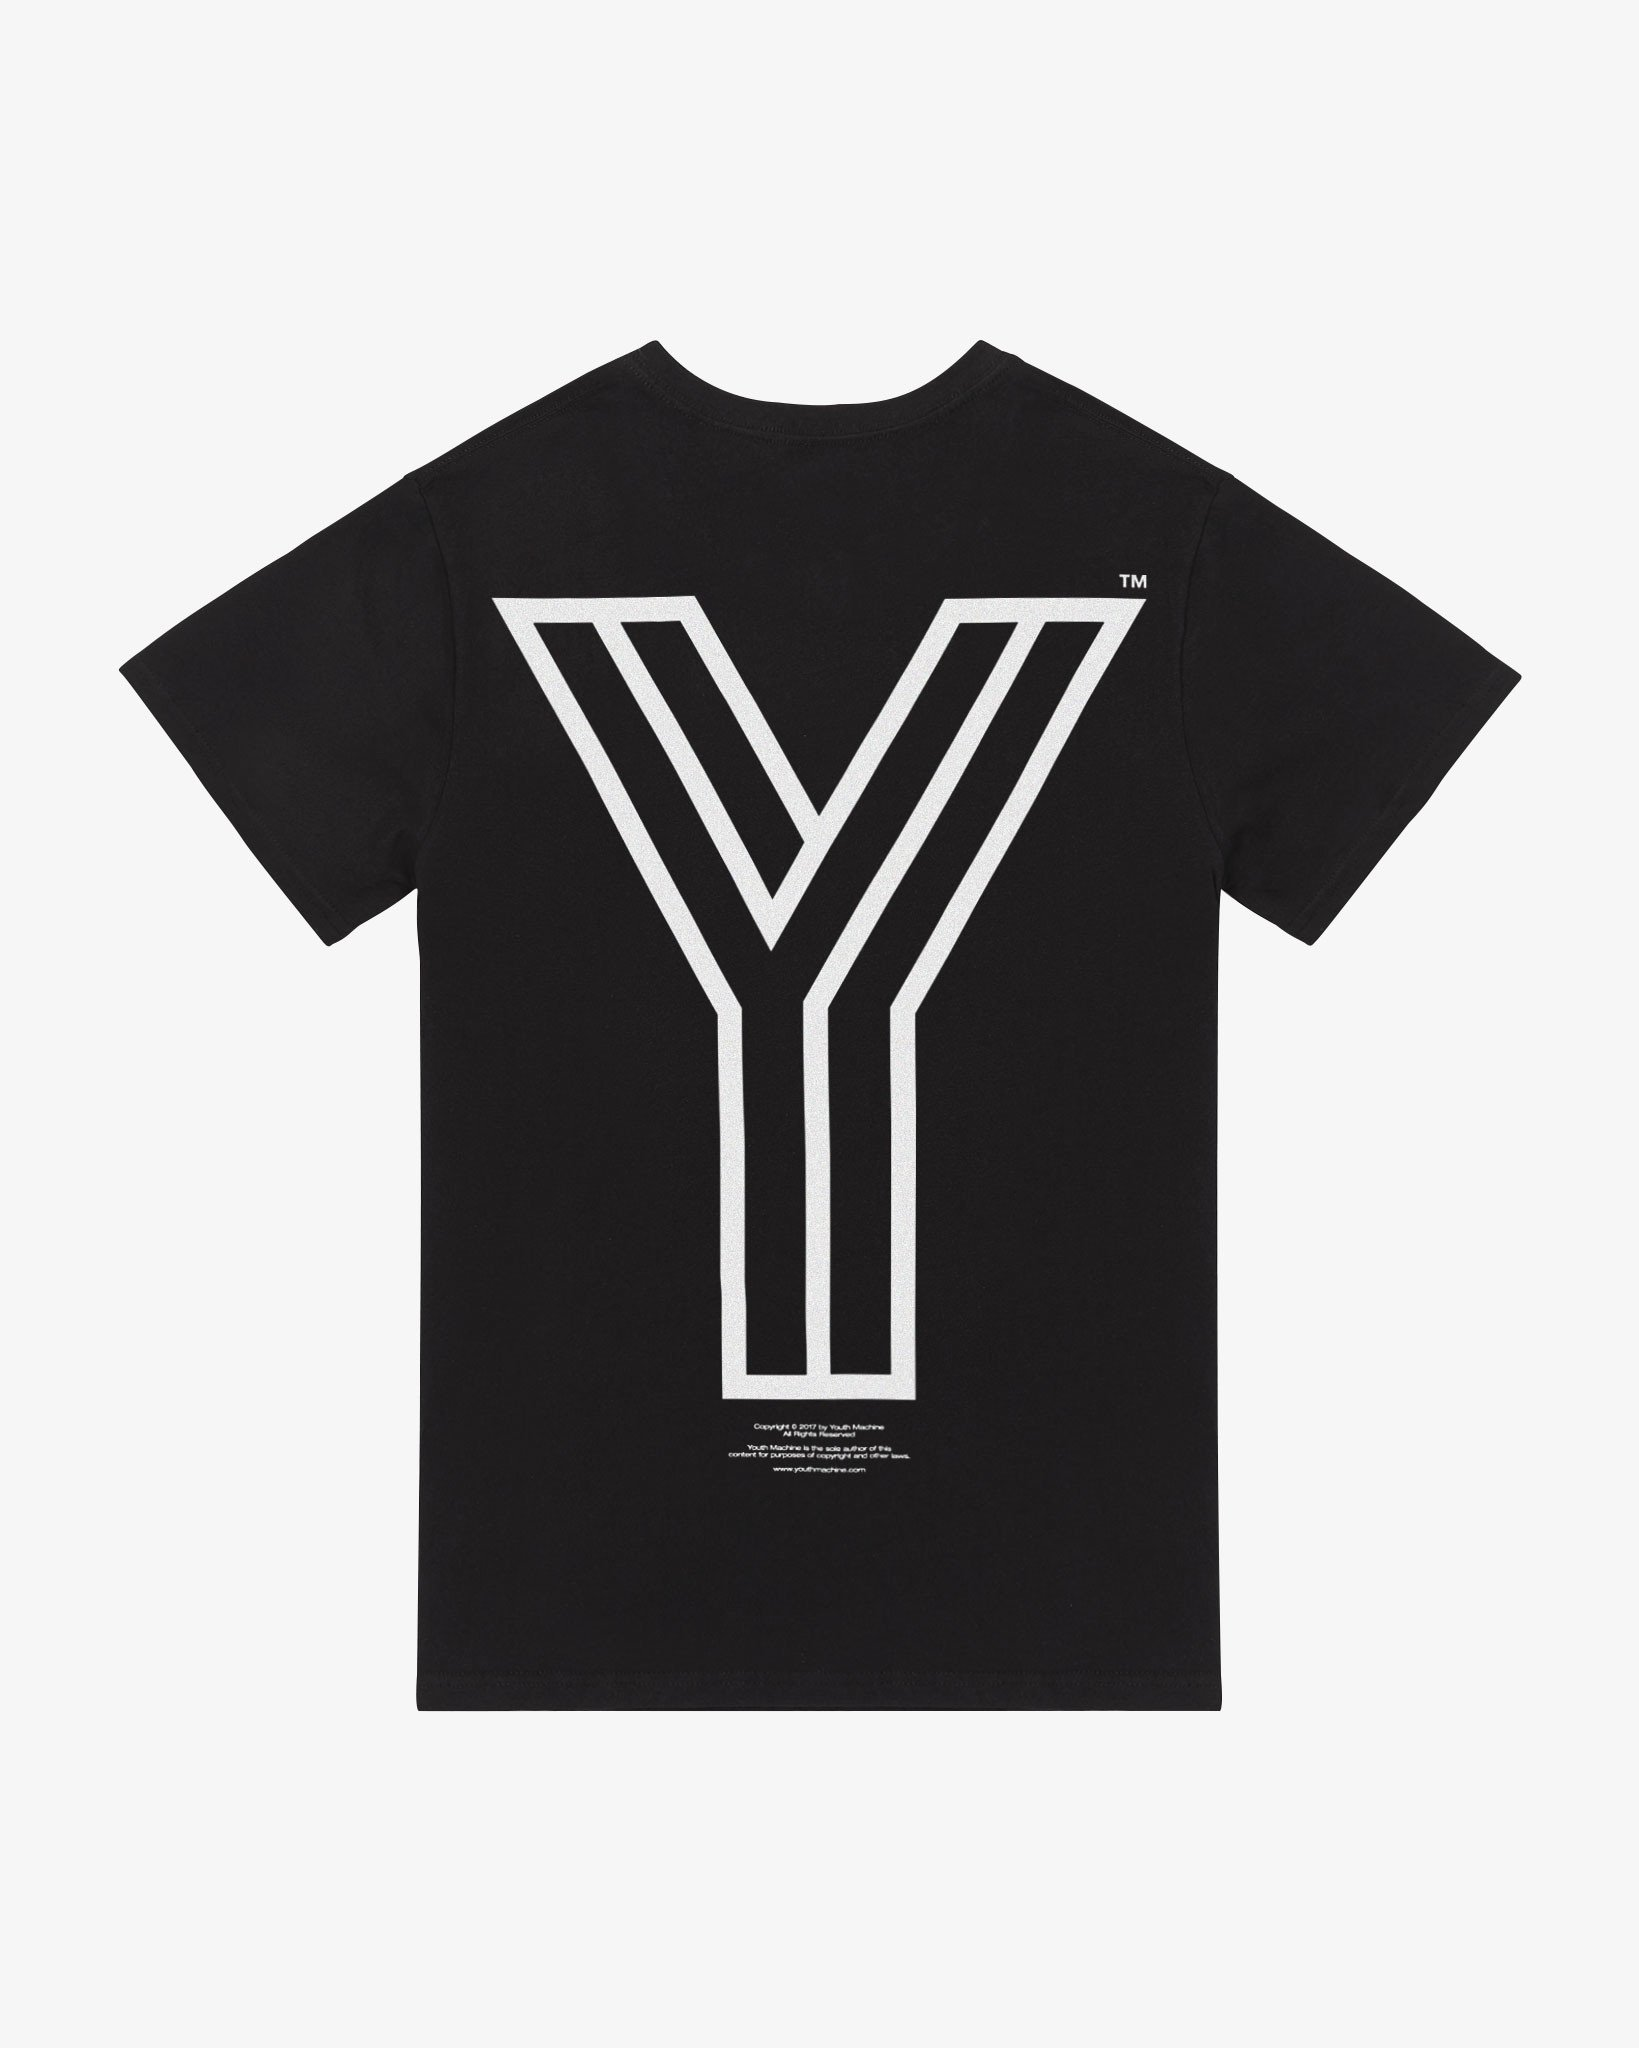 9. Spirits Tee - Brand: Youth MachinePrice: $28.00